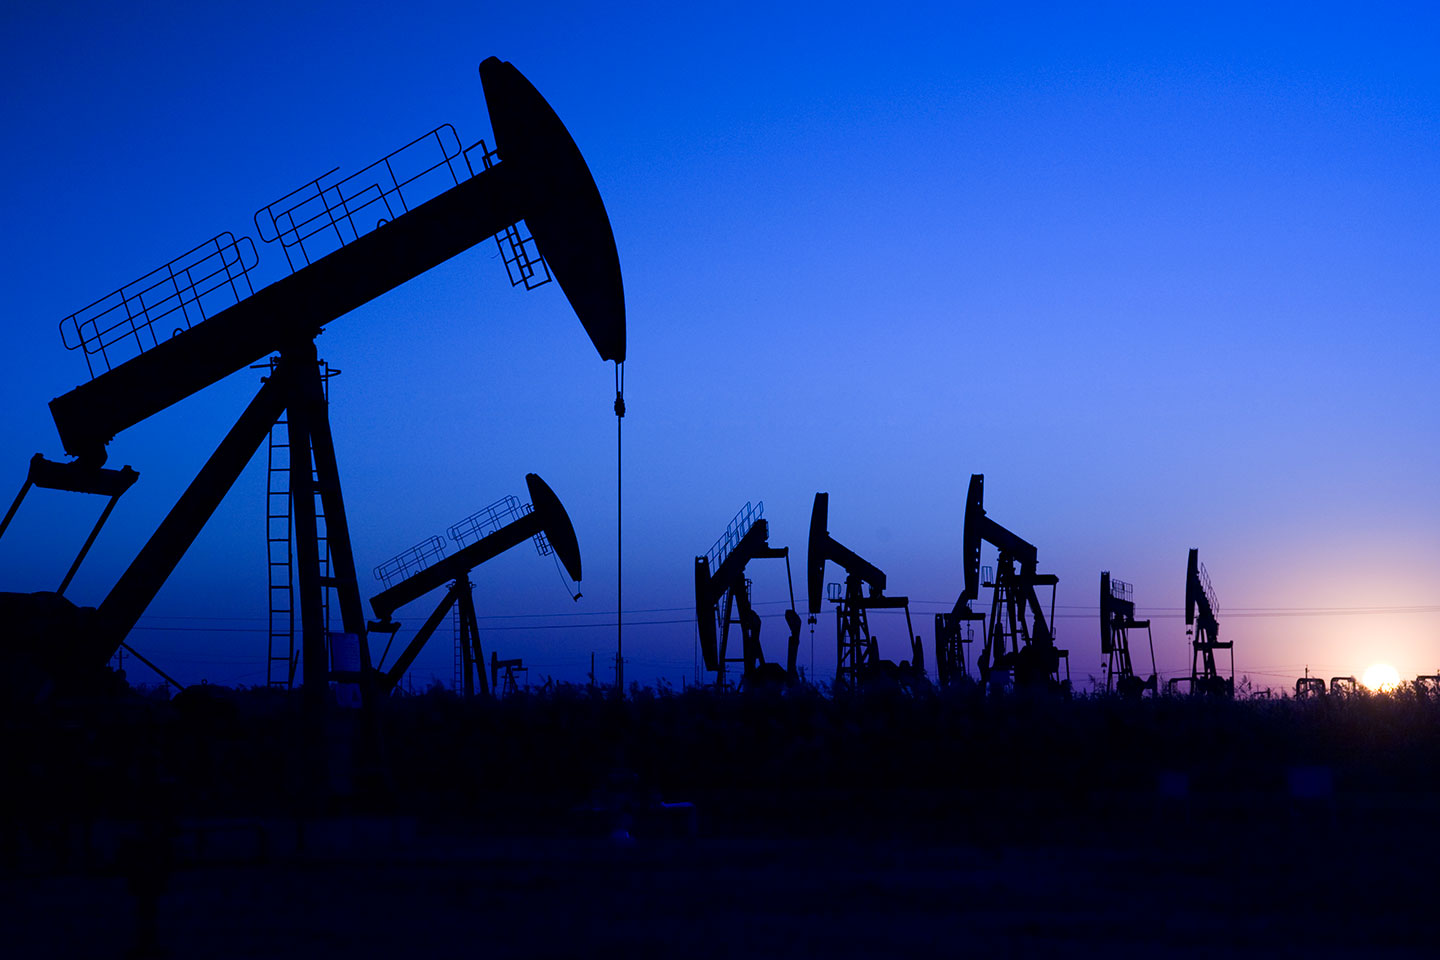 Oil price races towards $80 amid strong demand